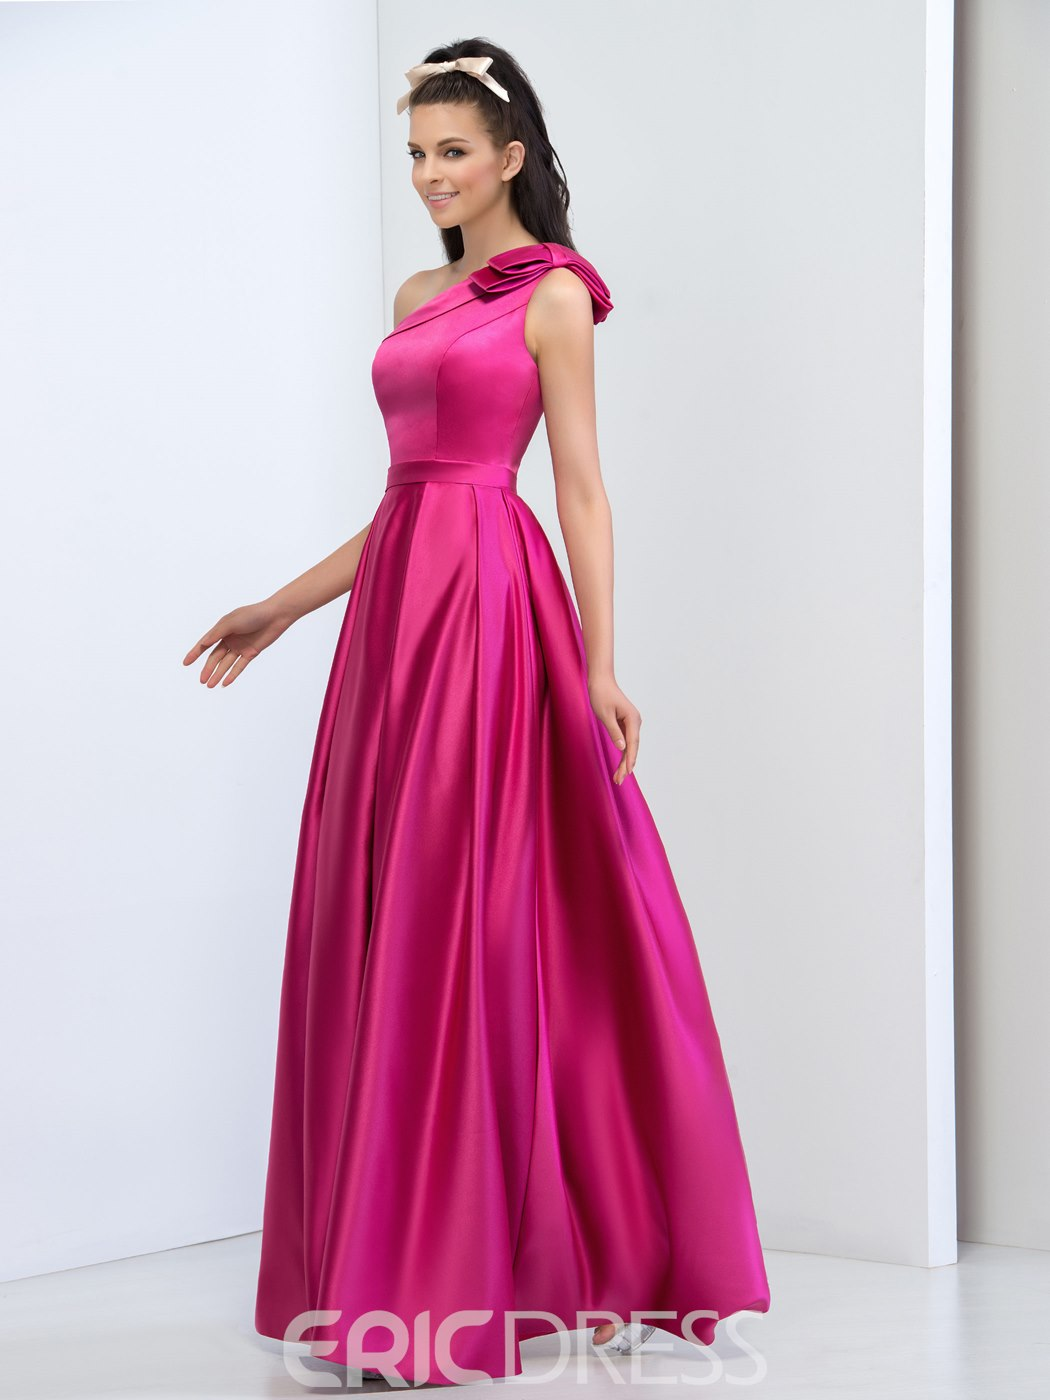 Ericdress A-Line One-Shoulder Ruches Long Prom Dress